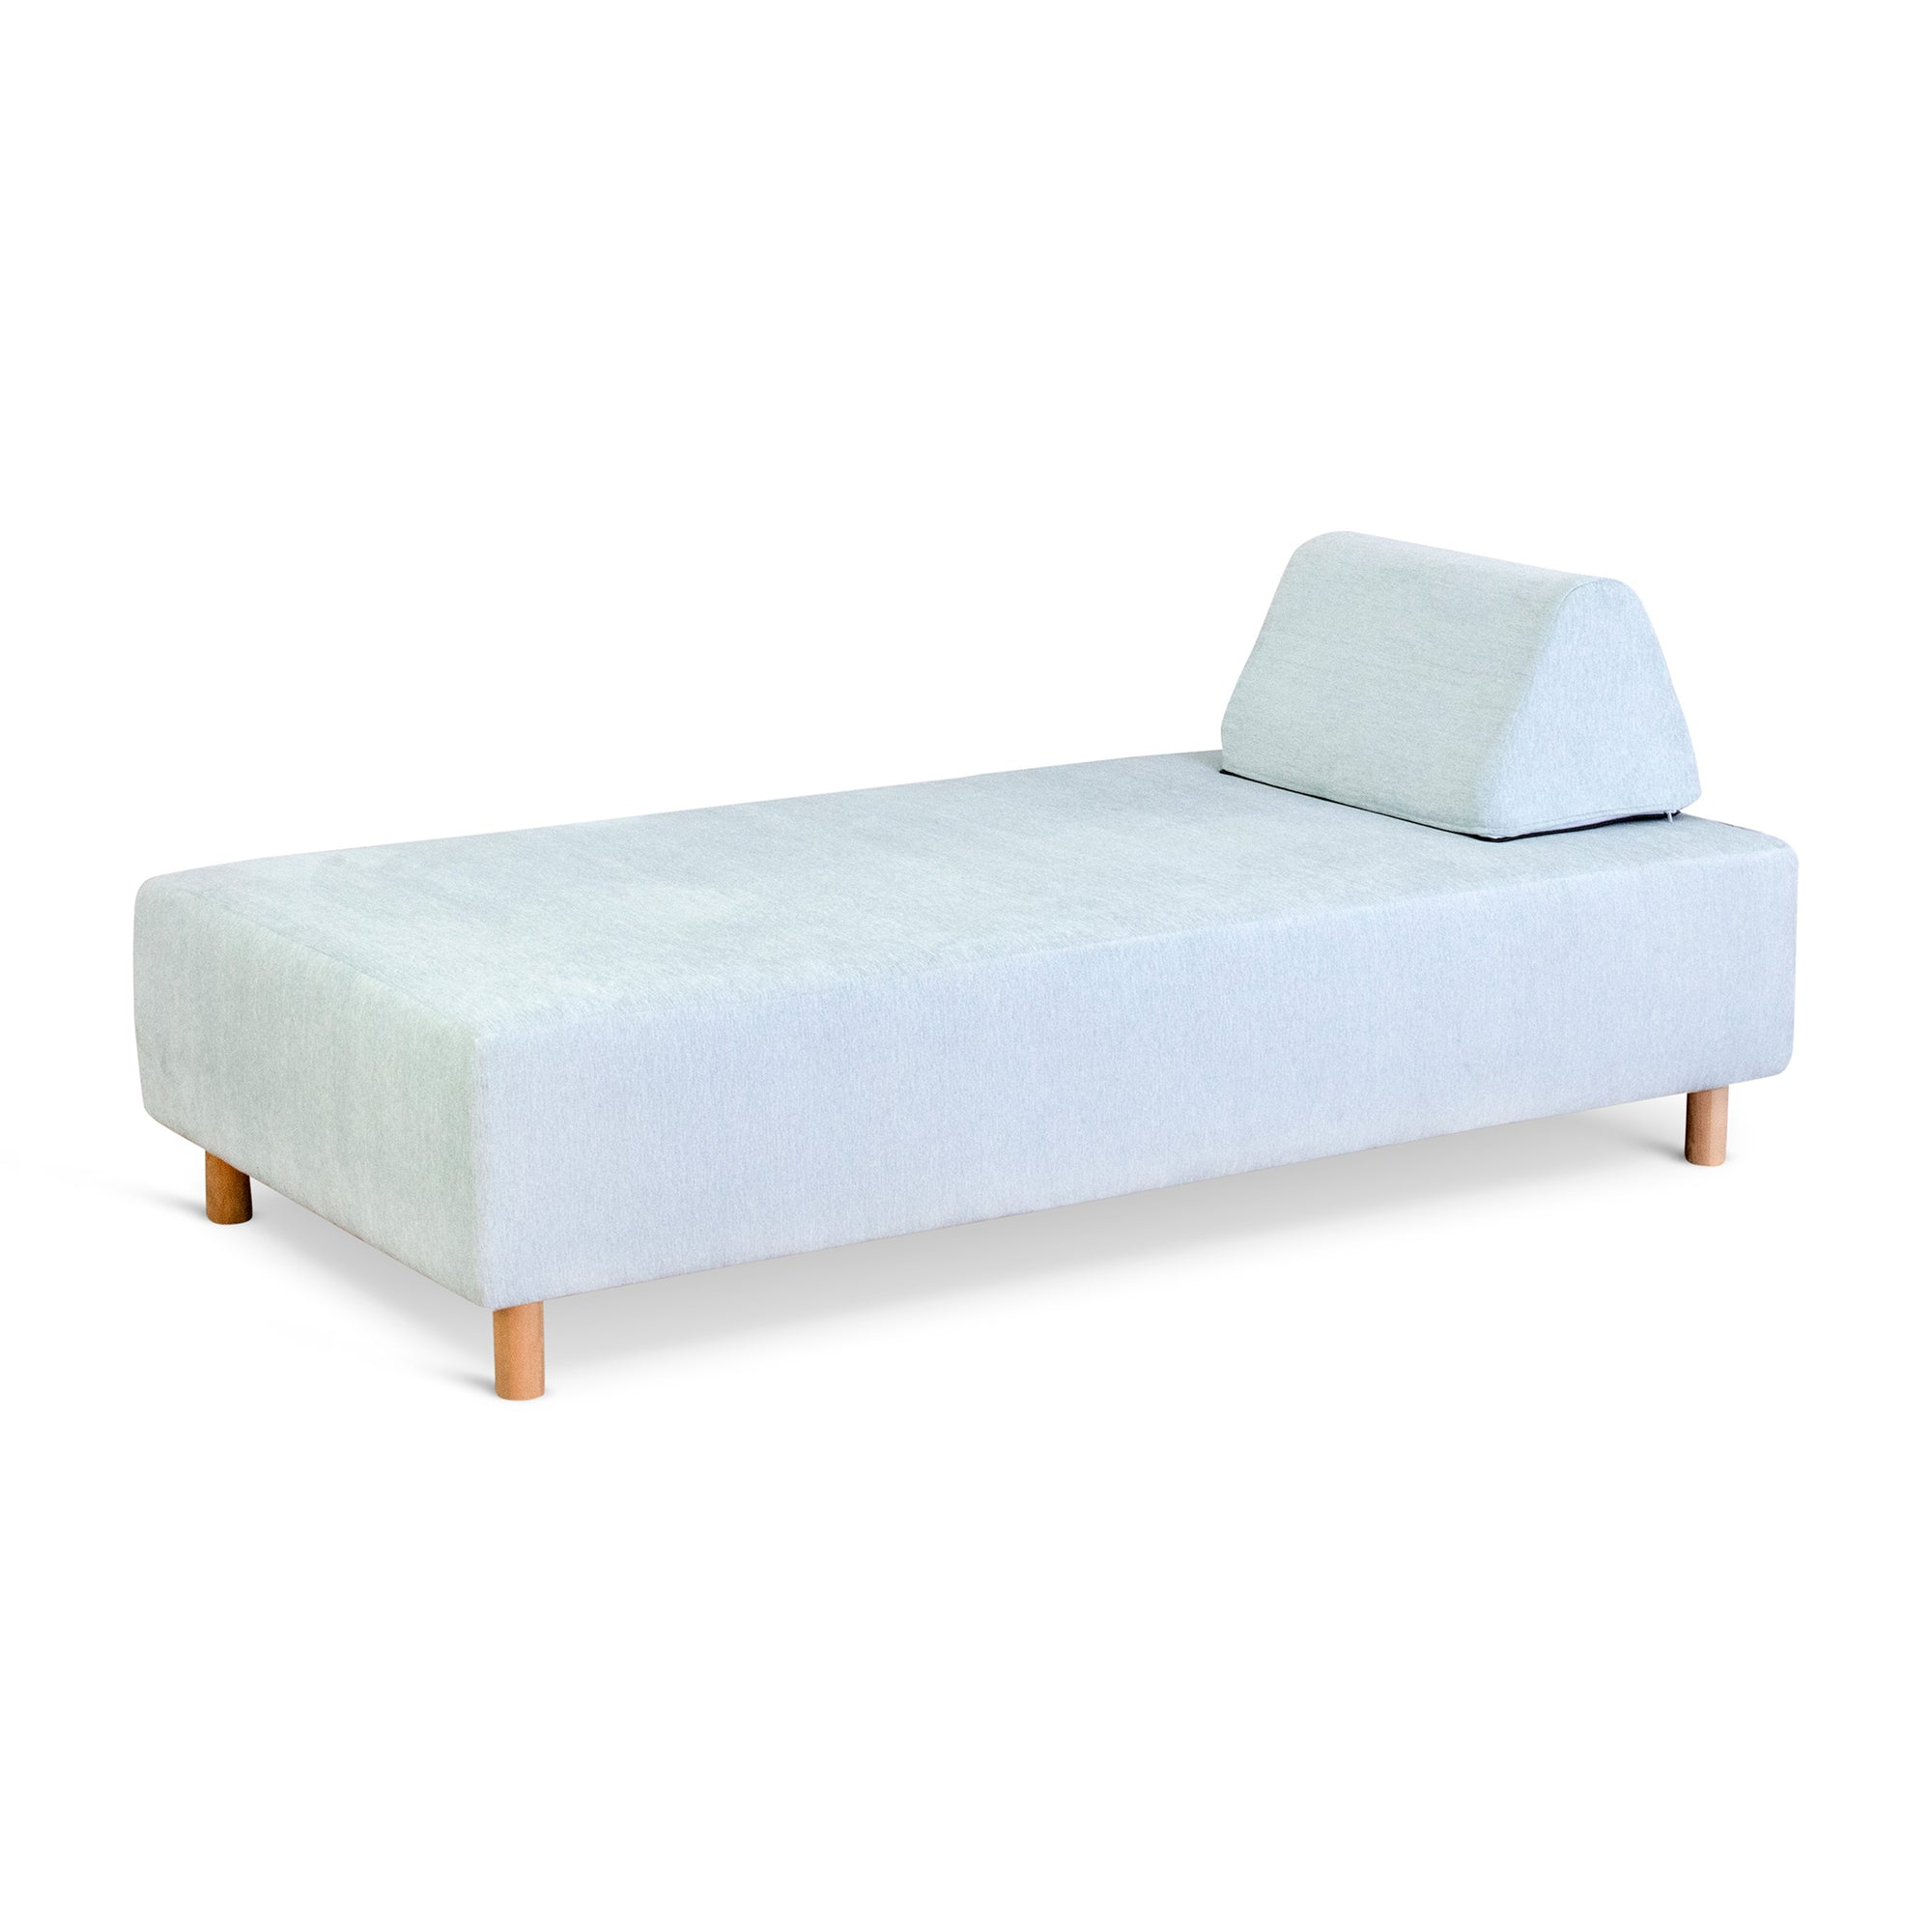 Osler Daybed with Wedge